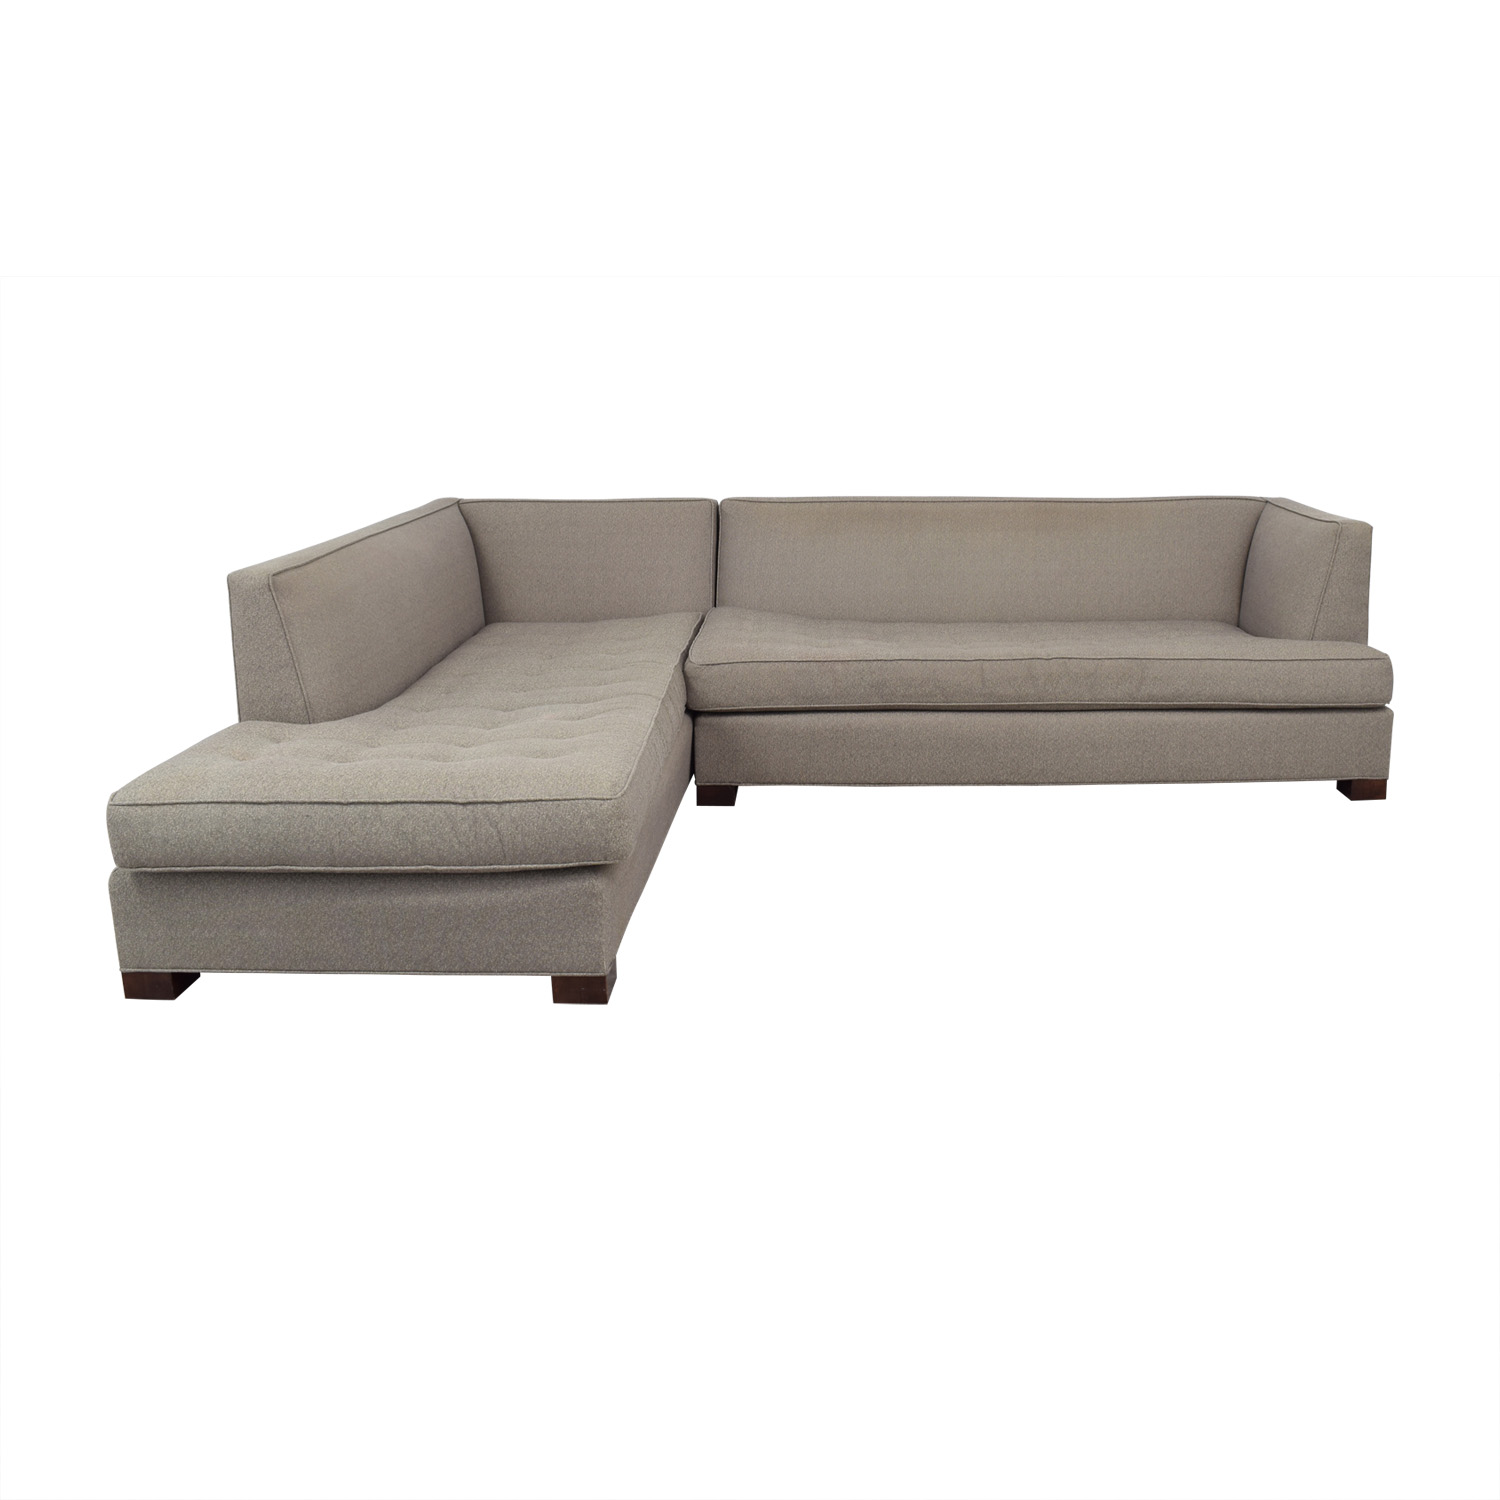 Mitchell Gold + Bob Williams Beige Tufted Chaise Sectional sale